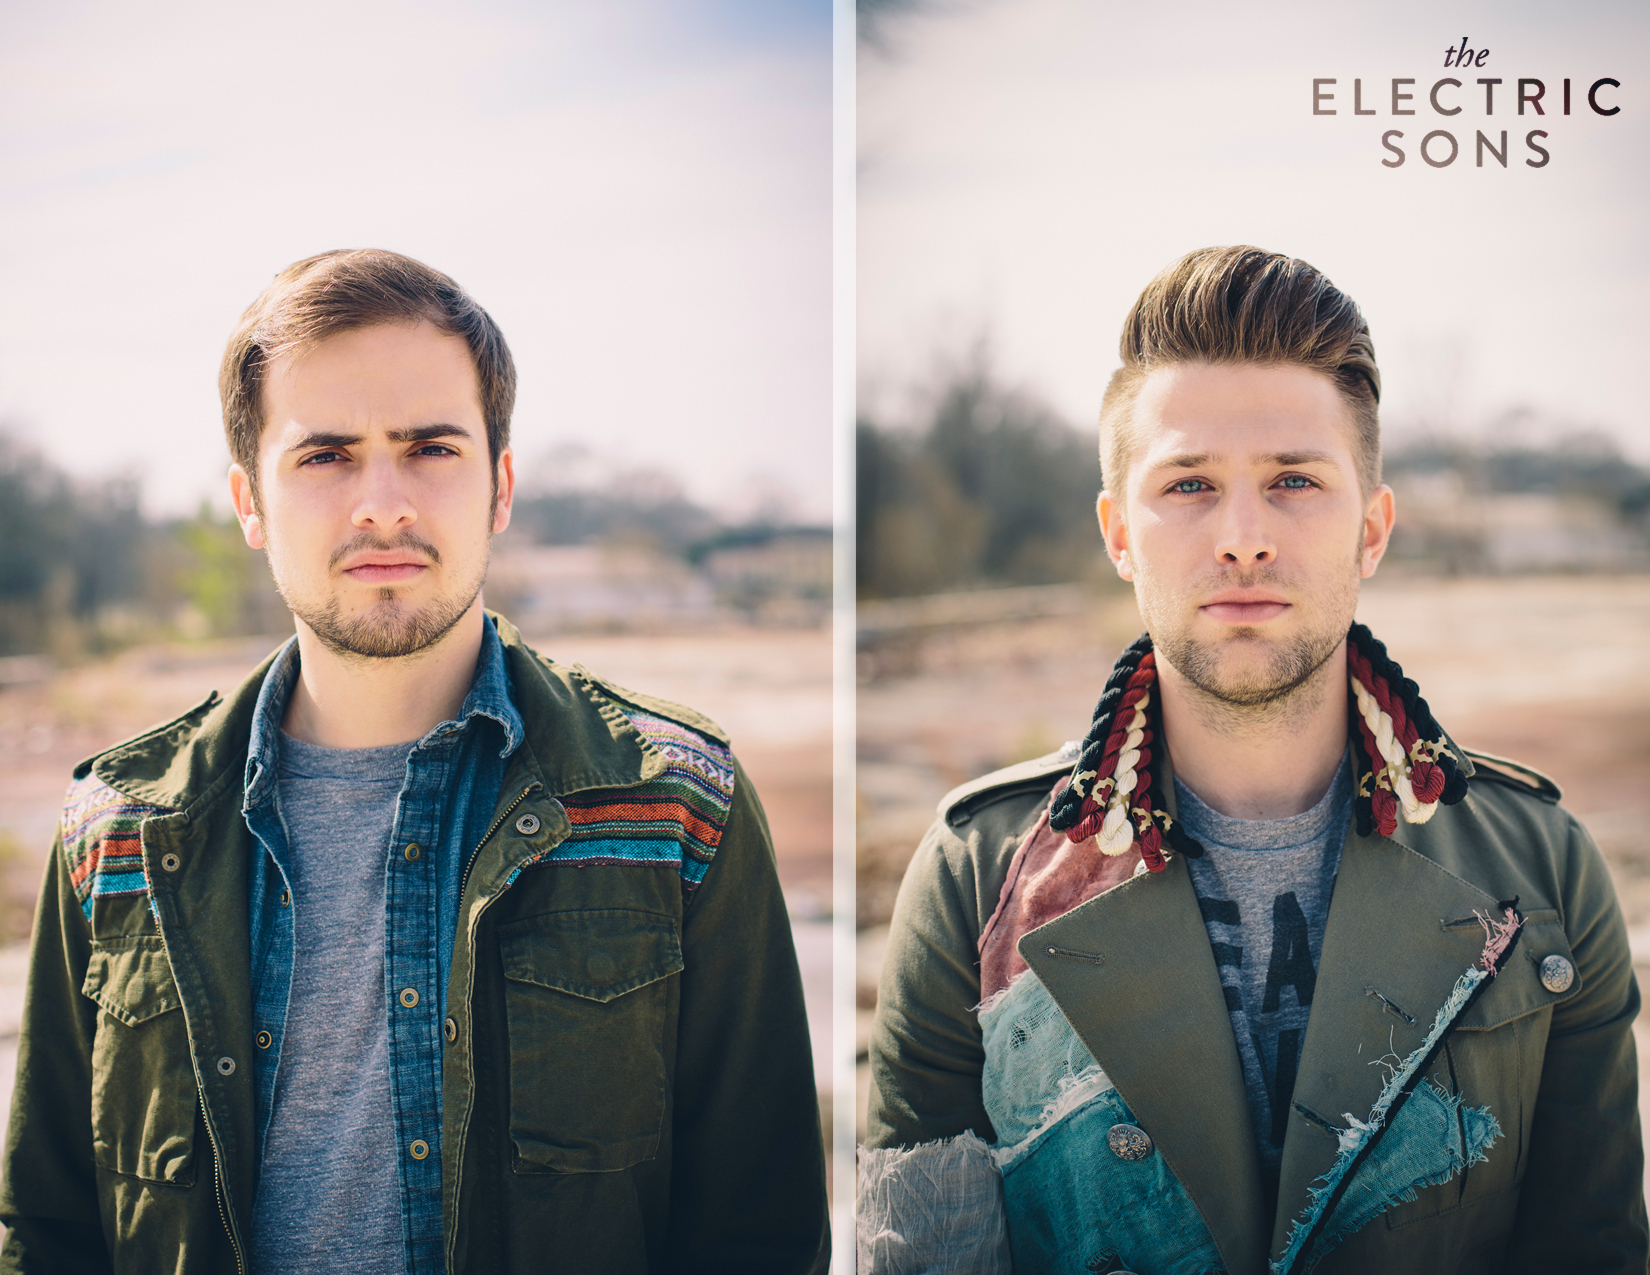 Electric Sons